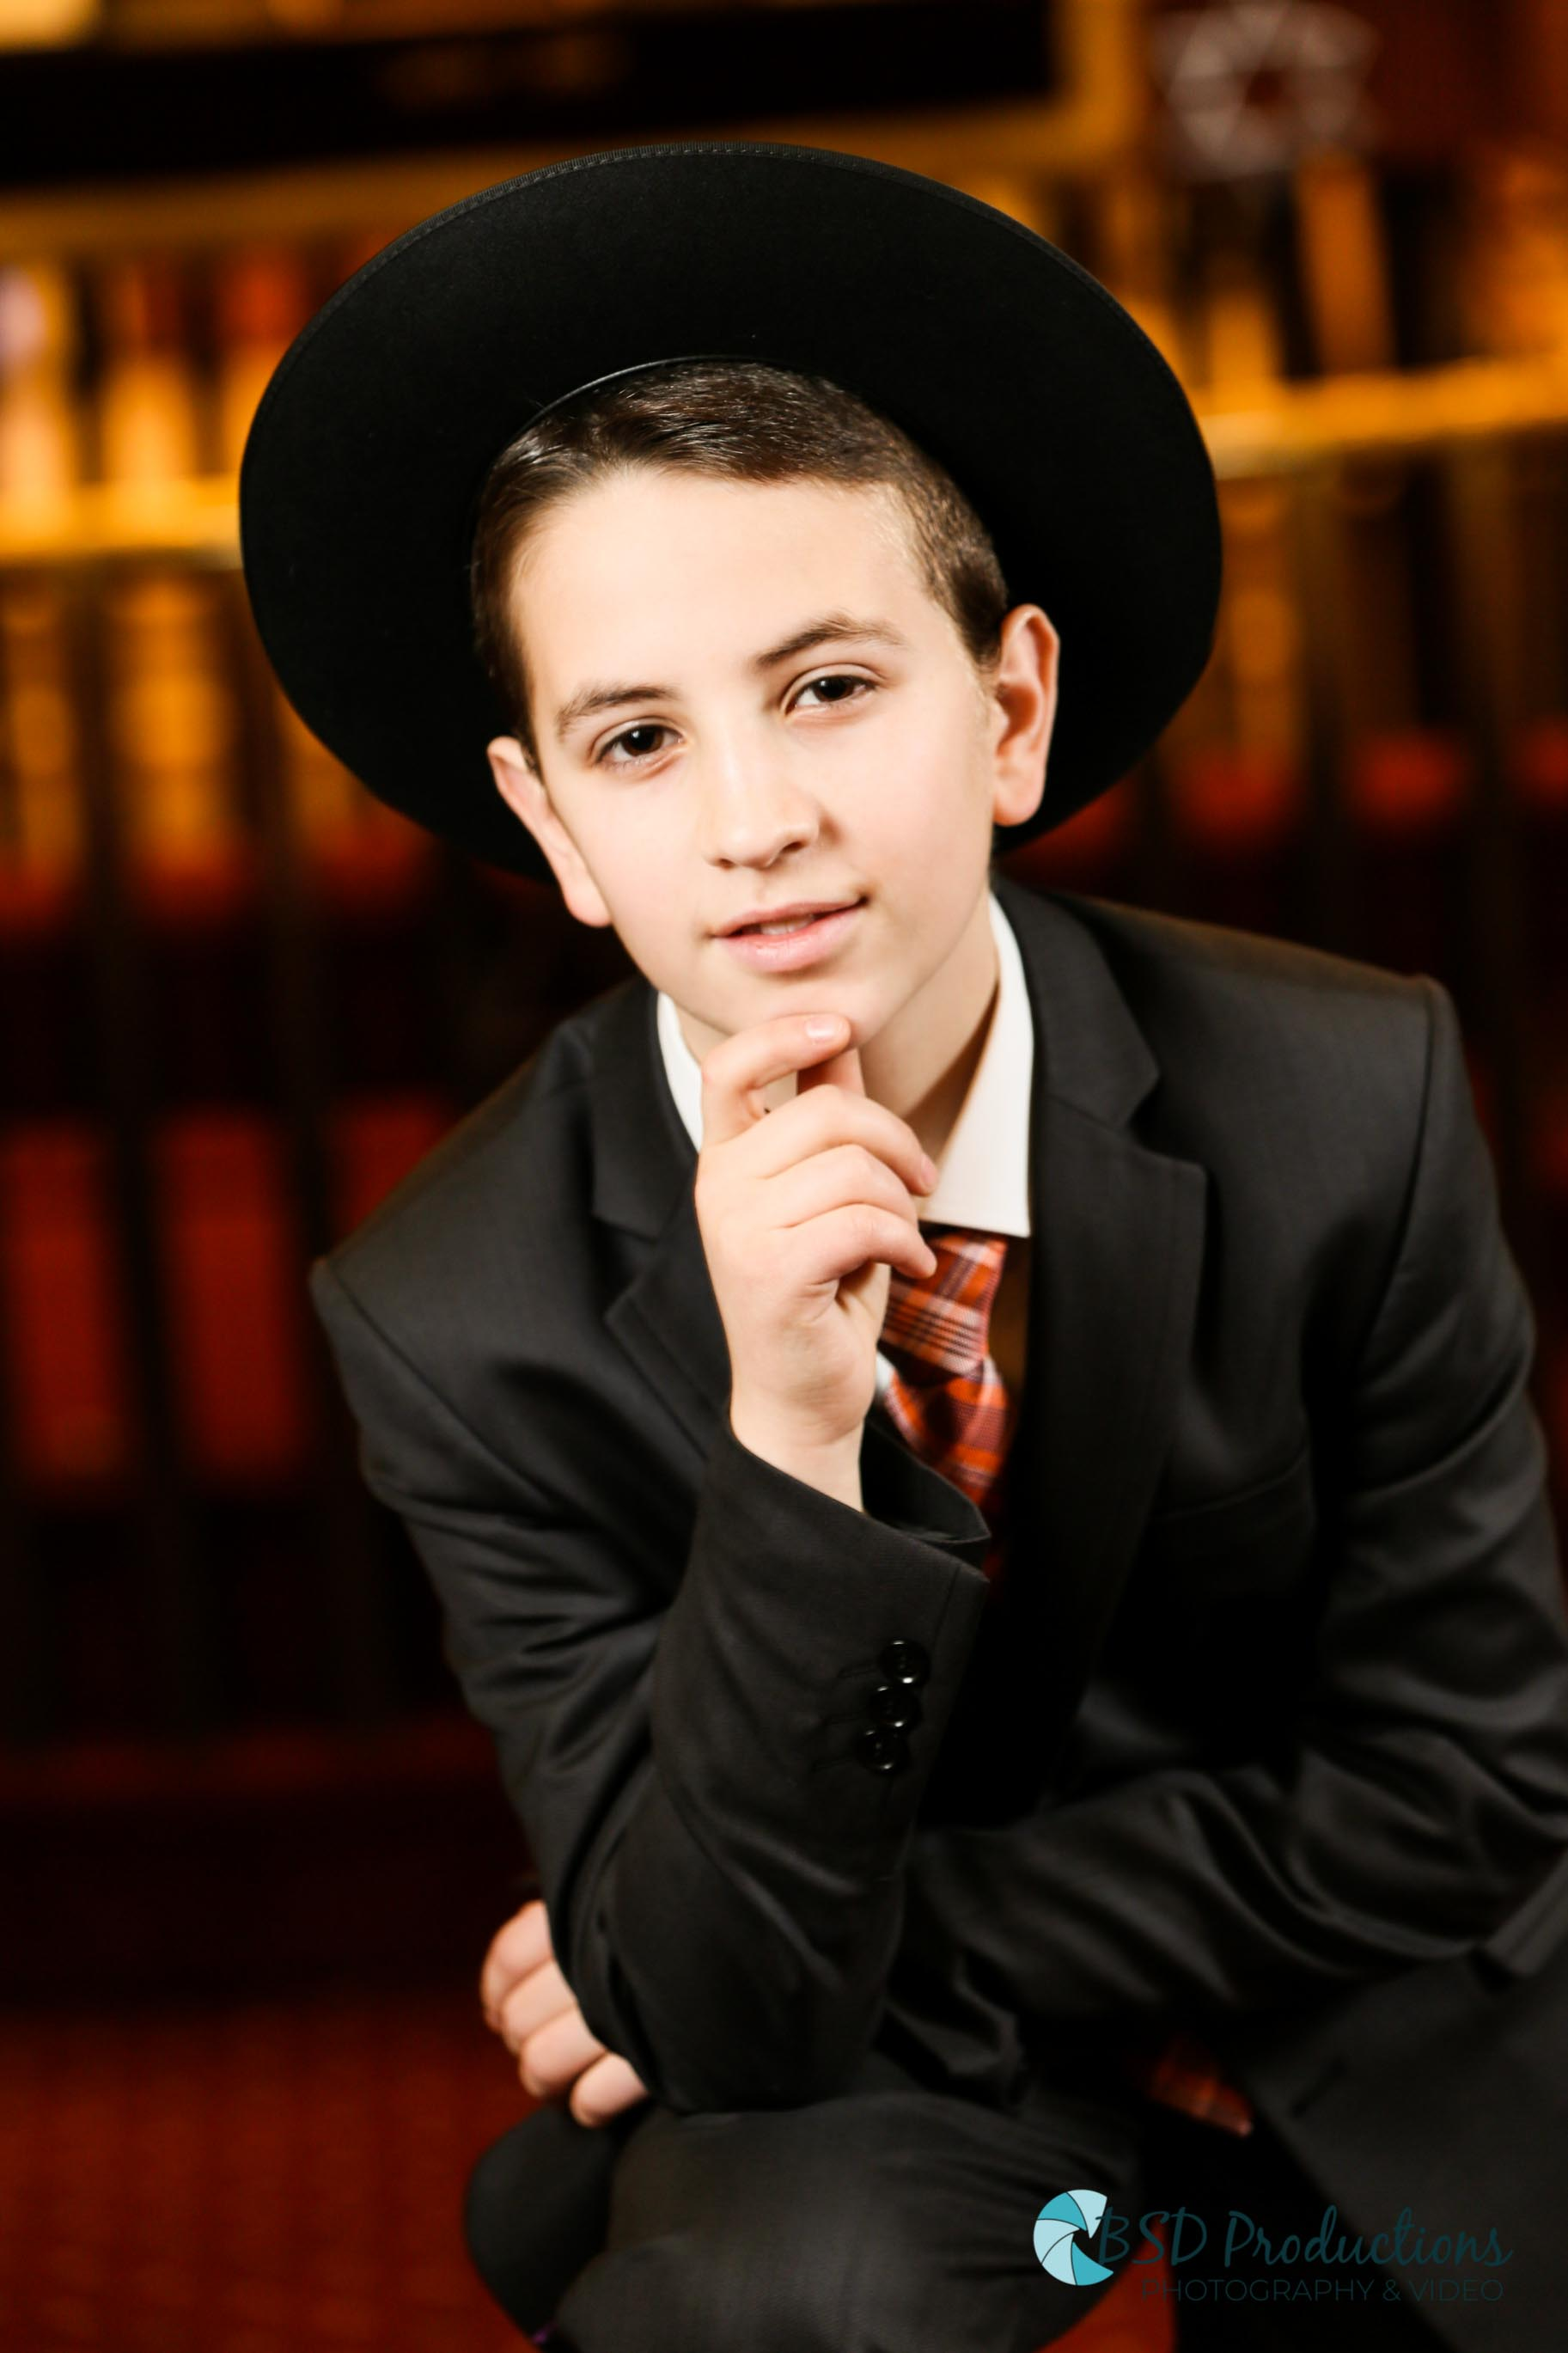 UH5A5046 Bar Mitzvah – BSD Prodcutions Photography